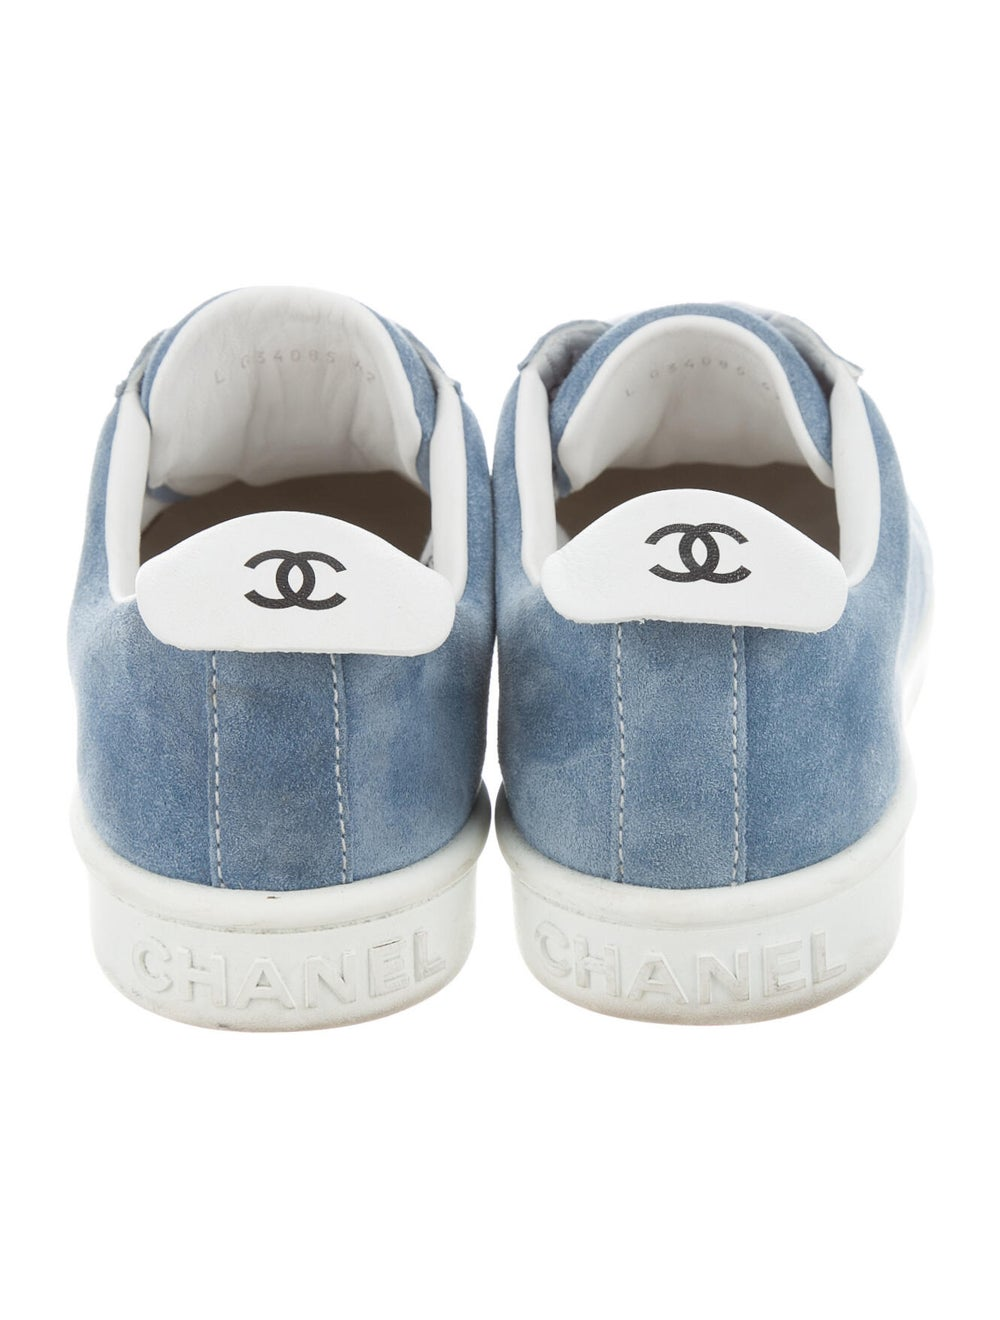 Chanel Logo Suede Sneakers Sneakers Blue - image 4